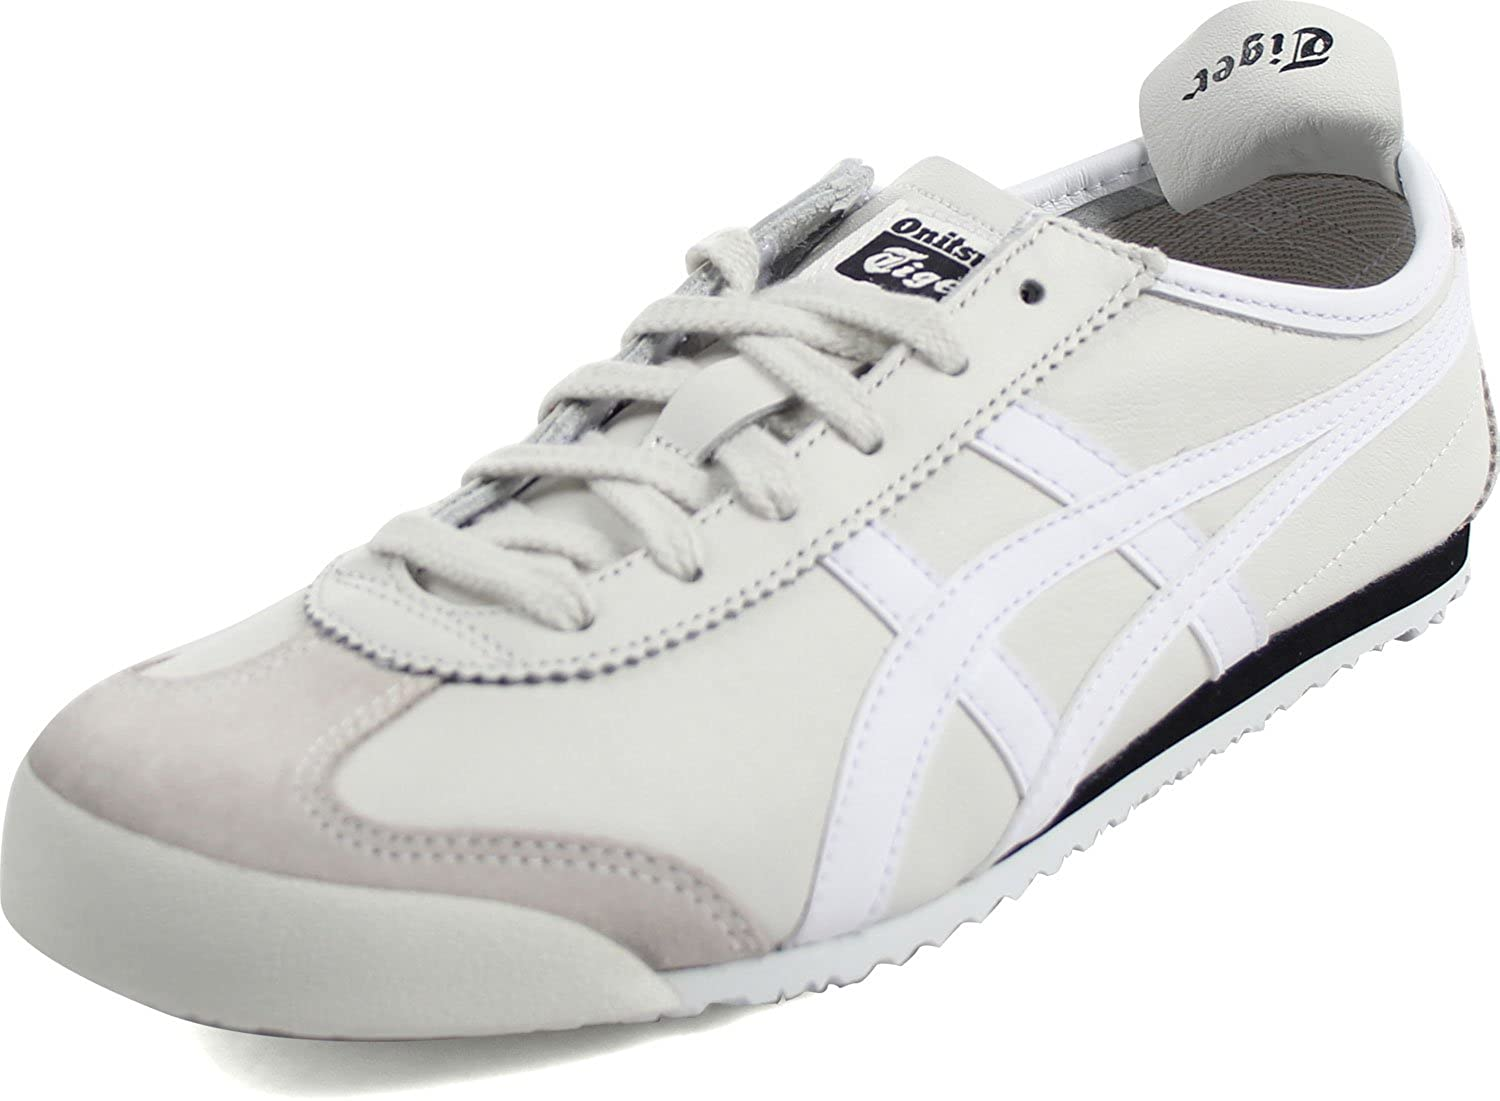 16292128d8 Amazon.com | Onitsuka Tiger by Asics Mexico 66 Sneaker | Fashion Sneakers